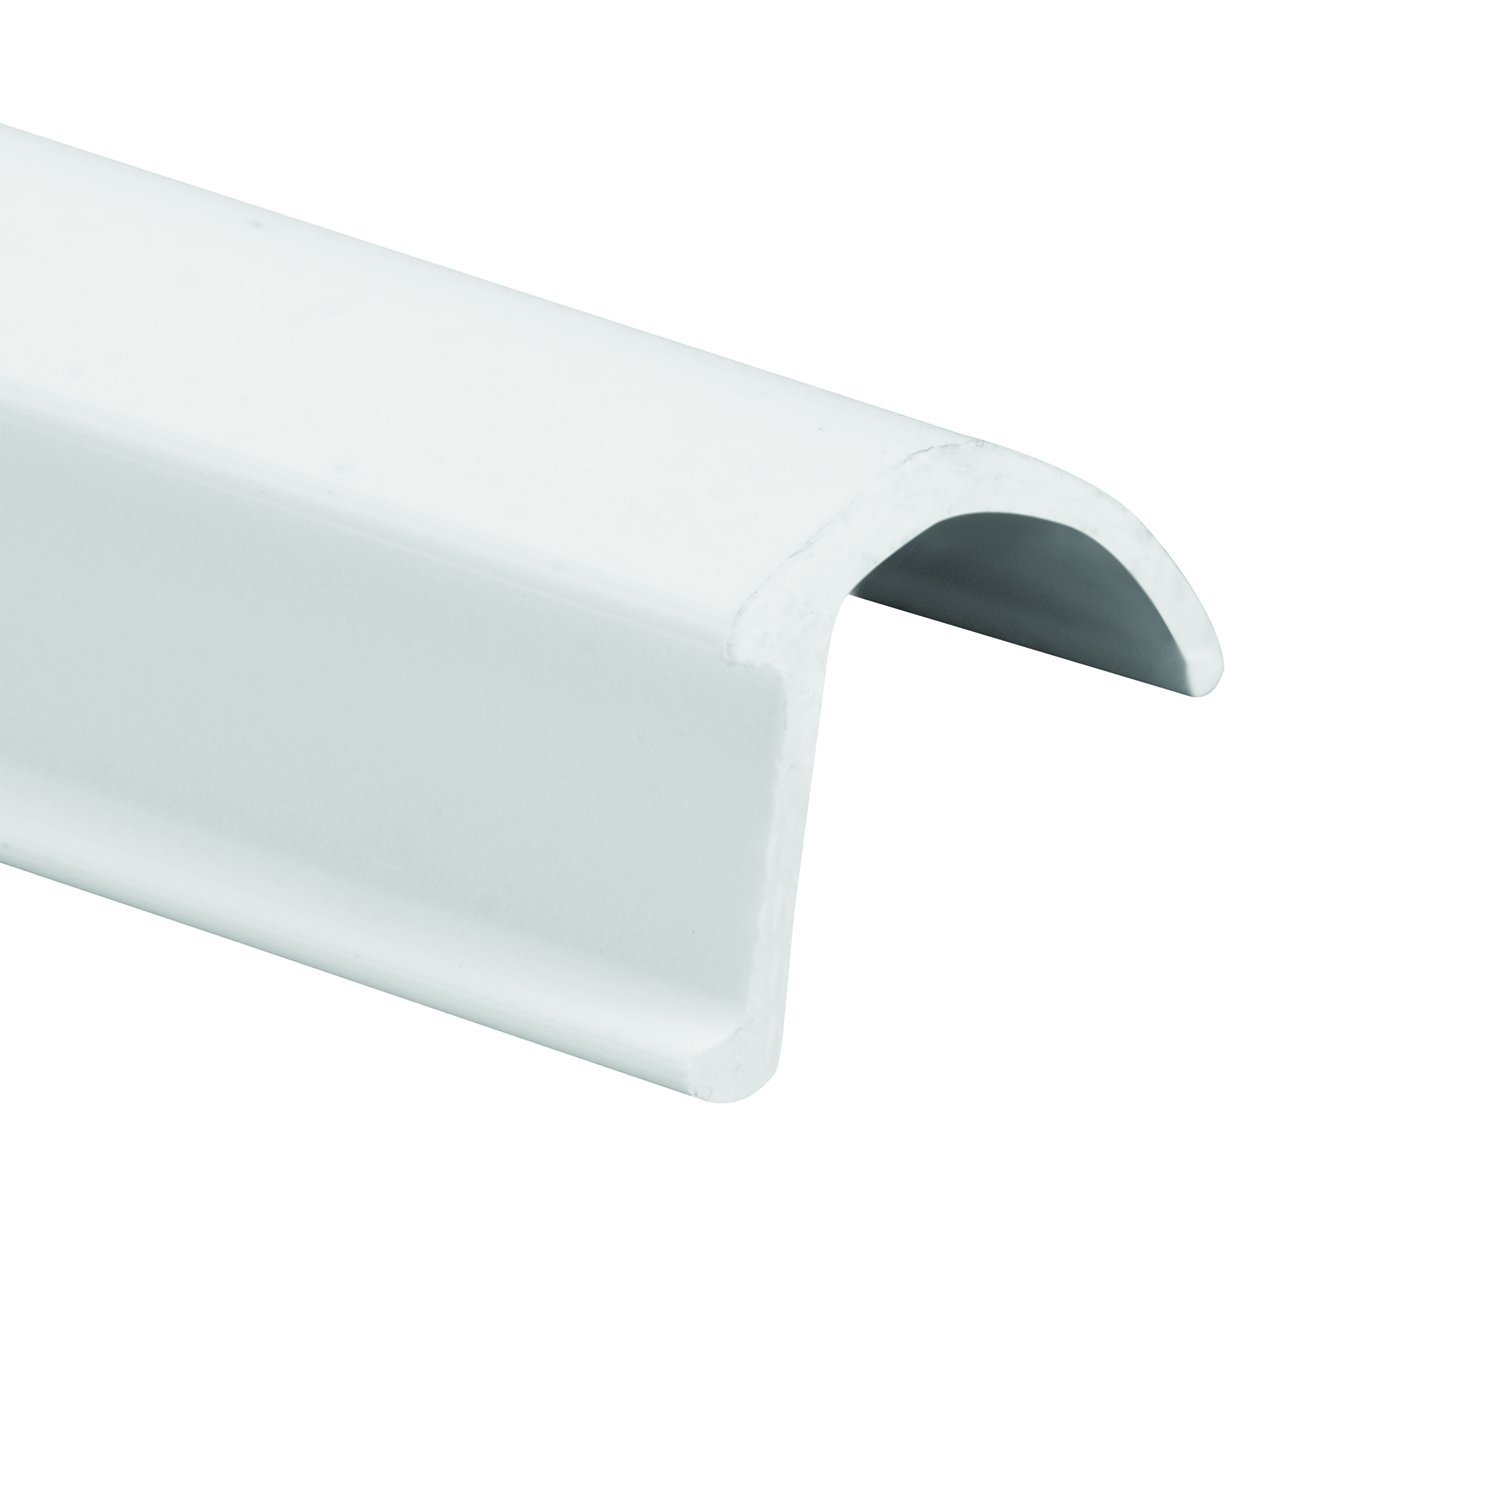 Prime-Line Products MP7861 Glass Retainer Strips, 9/32 in. x 1/2 in. x 72 in, Rigid Vinyl, White in Color, Snap-in Glazing, Pack of 25 by PRIME-LINE (Image #2)